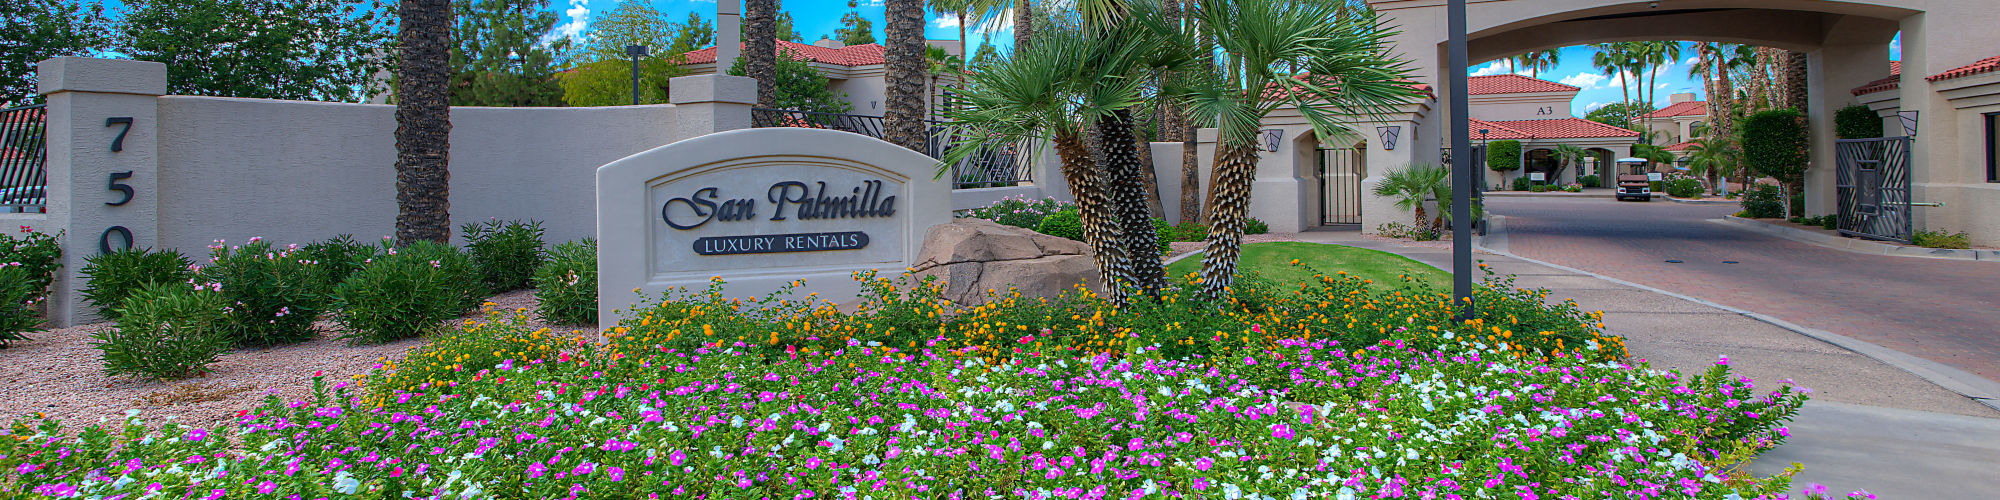 Map & Directions to San Palmilla in Tempe, Arizona